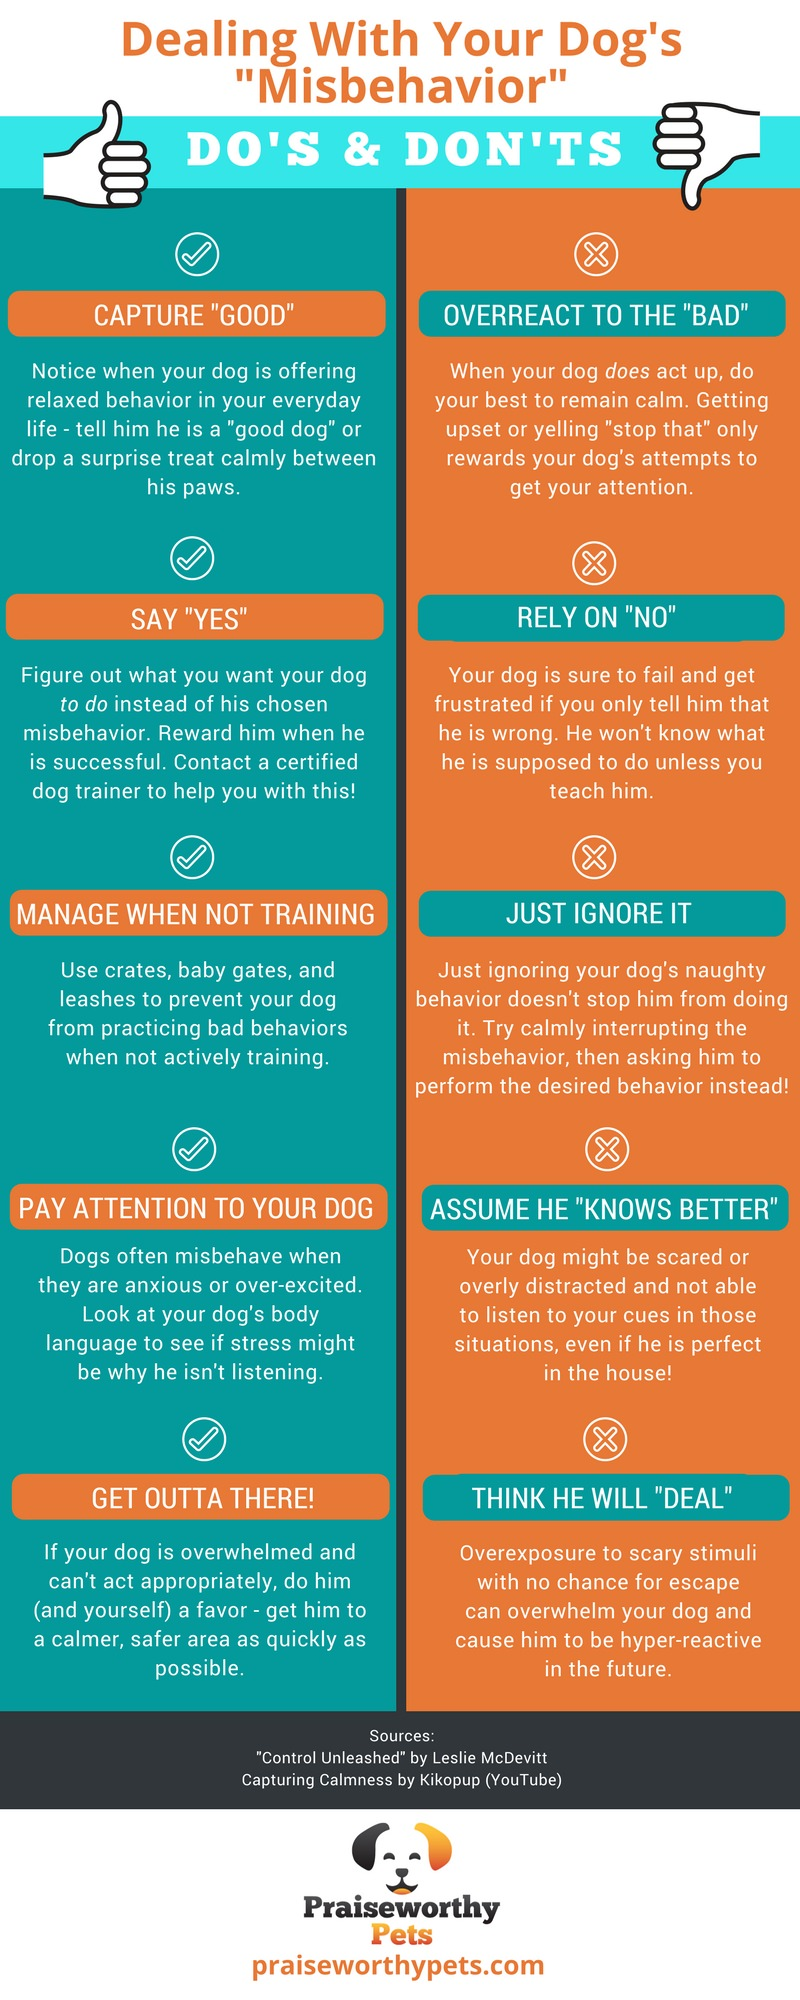 Dealing With Your Dog's Misbehavior.jpg